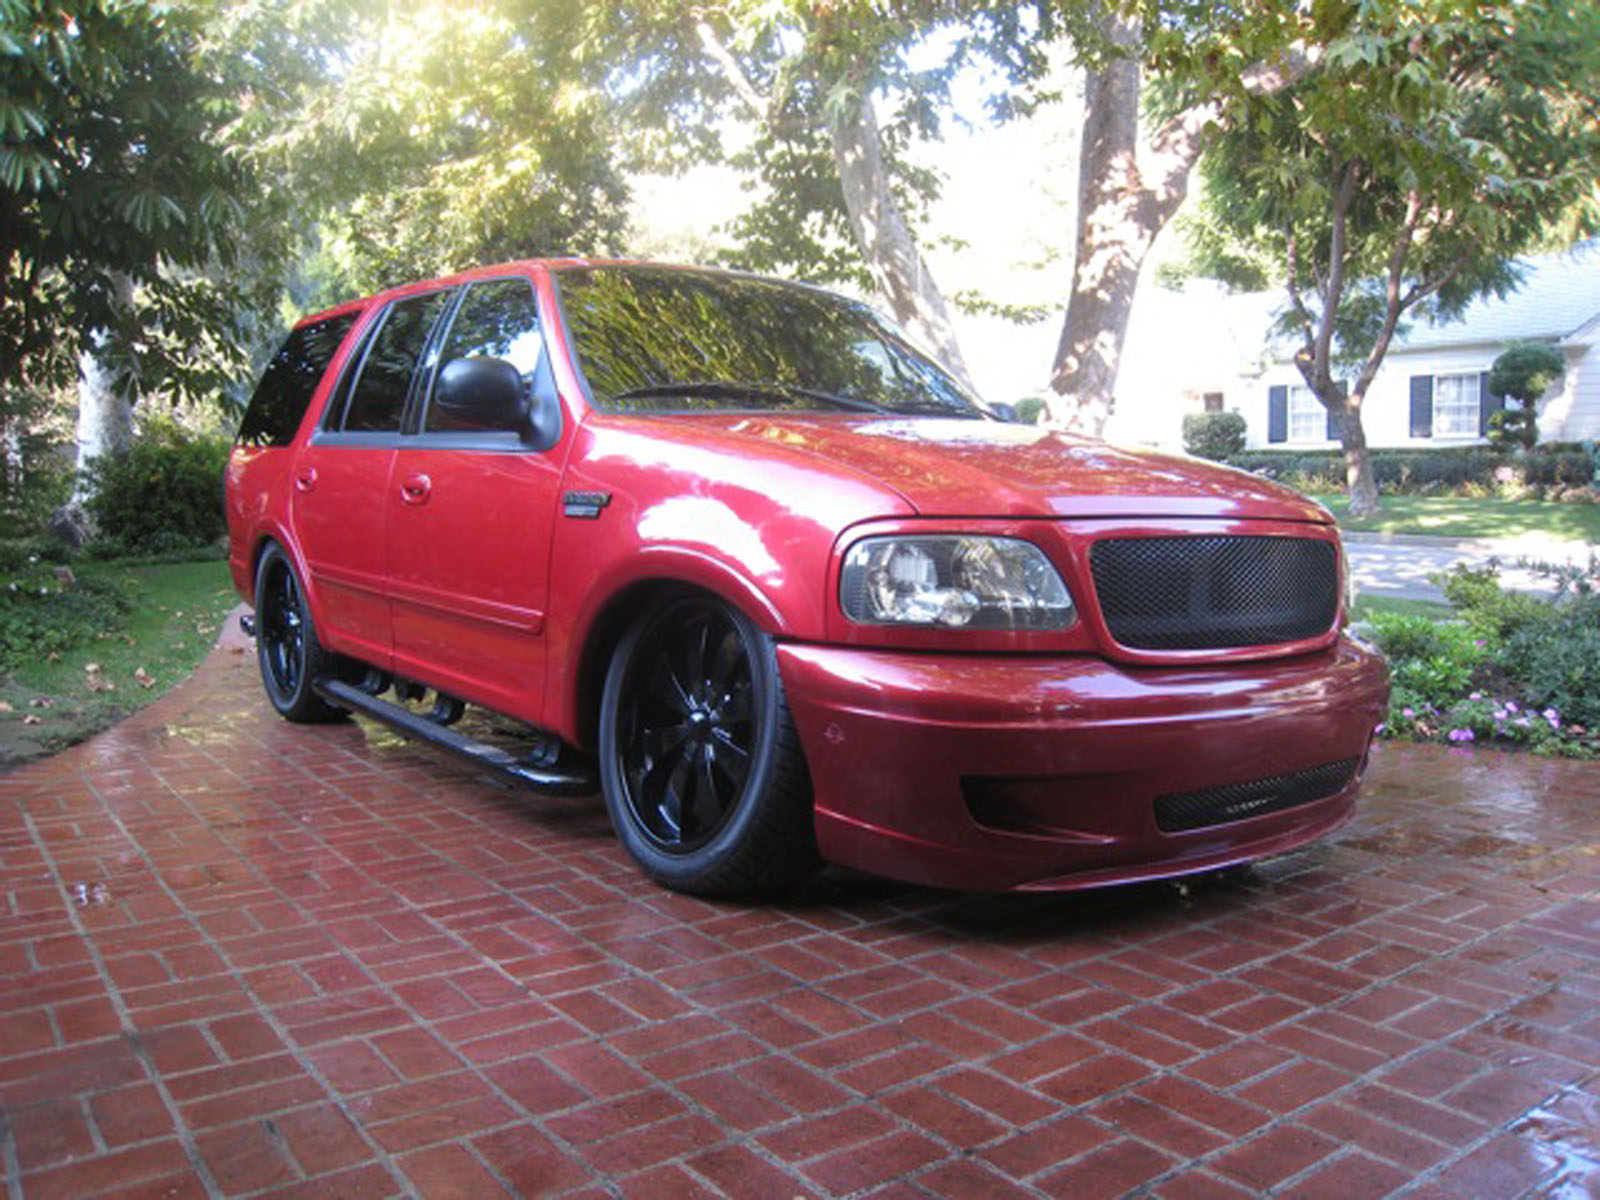 Suv For Sale Under 5000 >> 2001 Ford Expedition For Sale | Los Angeles California